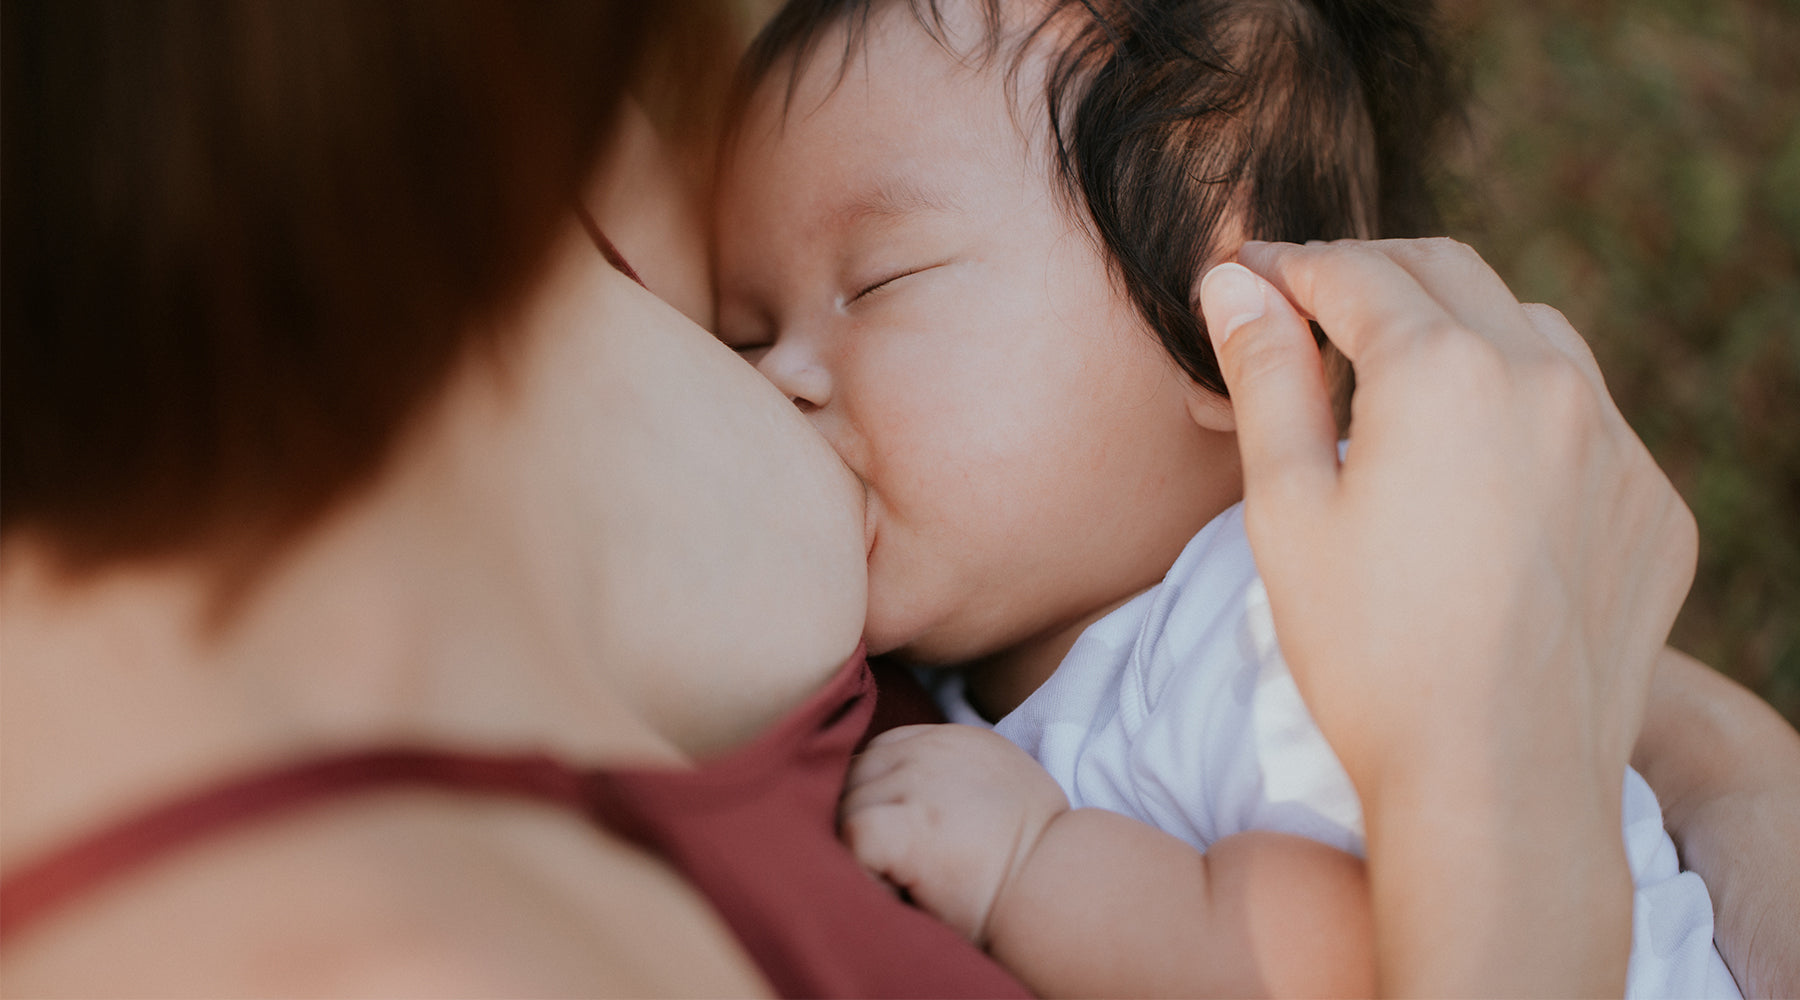 Lovemère celebrates World Breastfeeding Week 2020